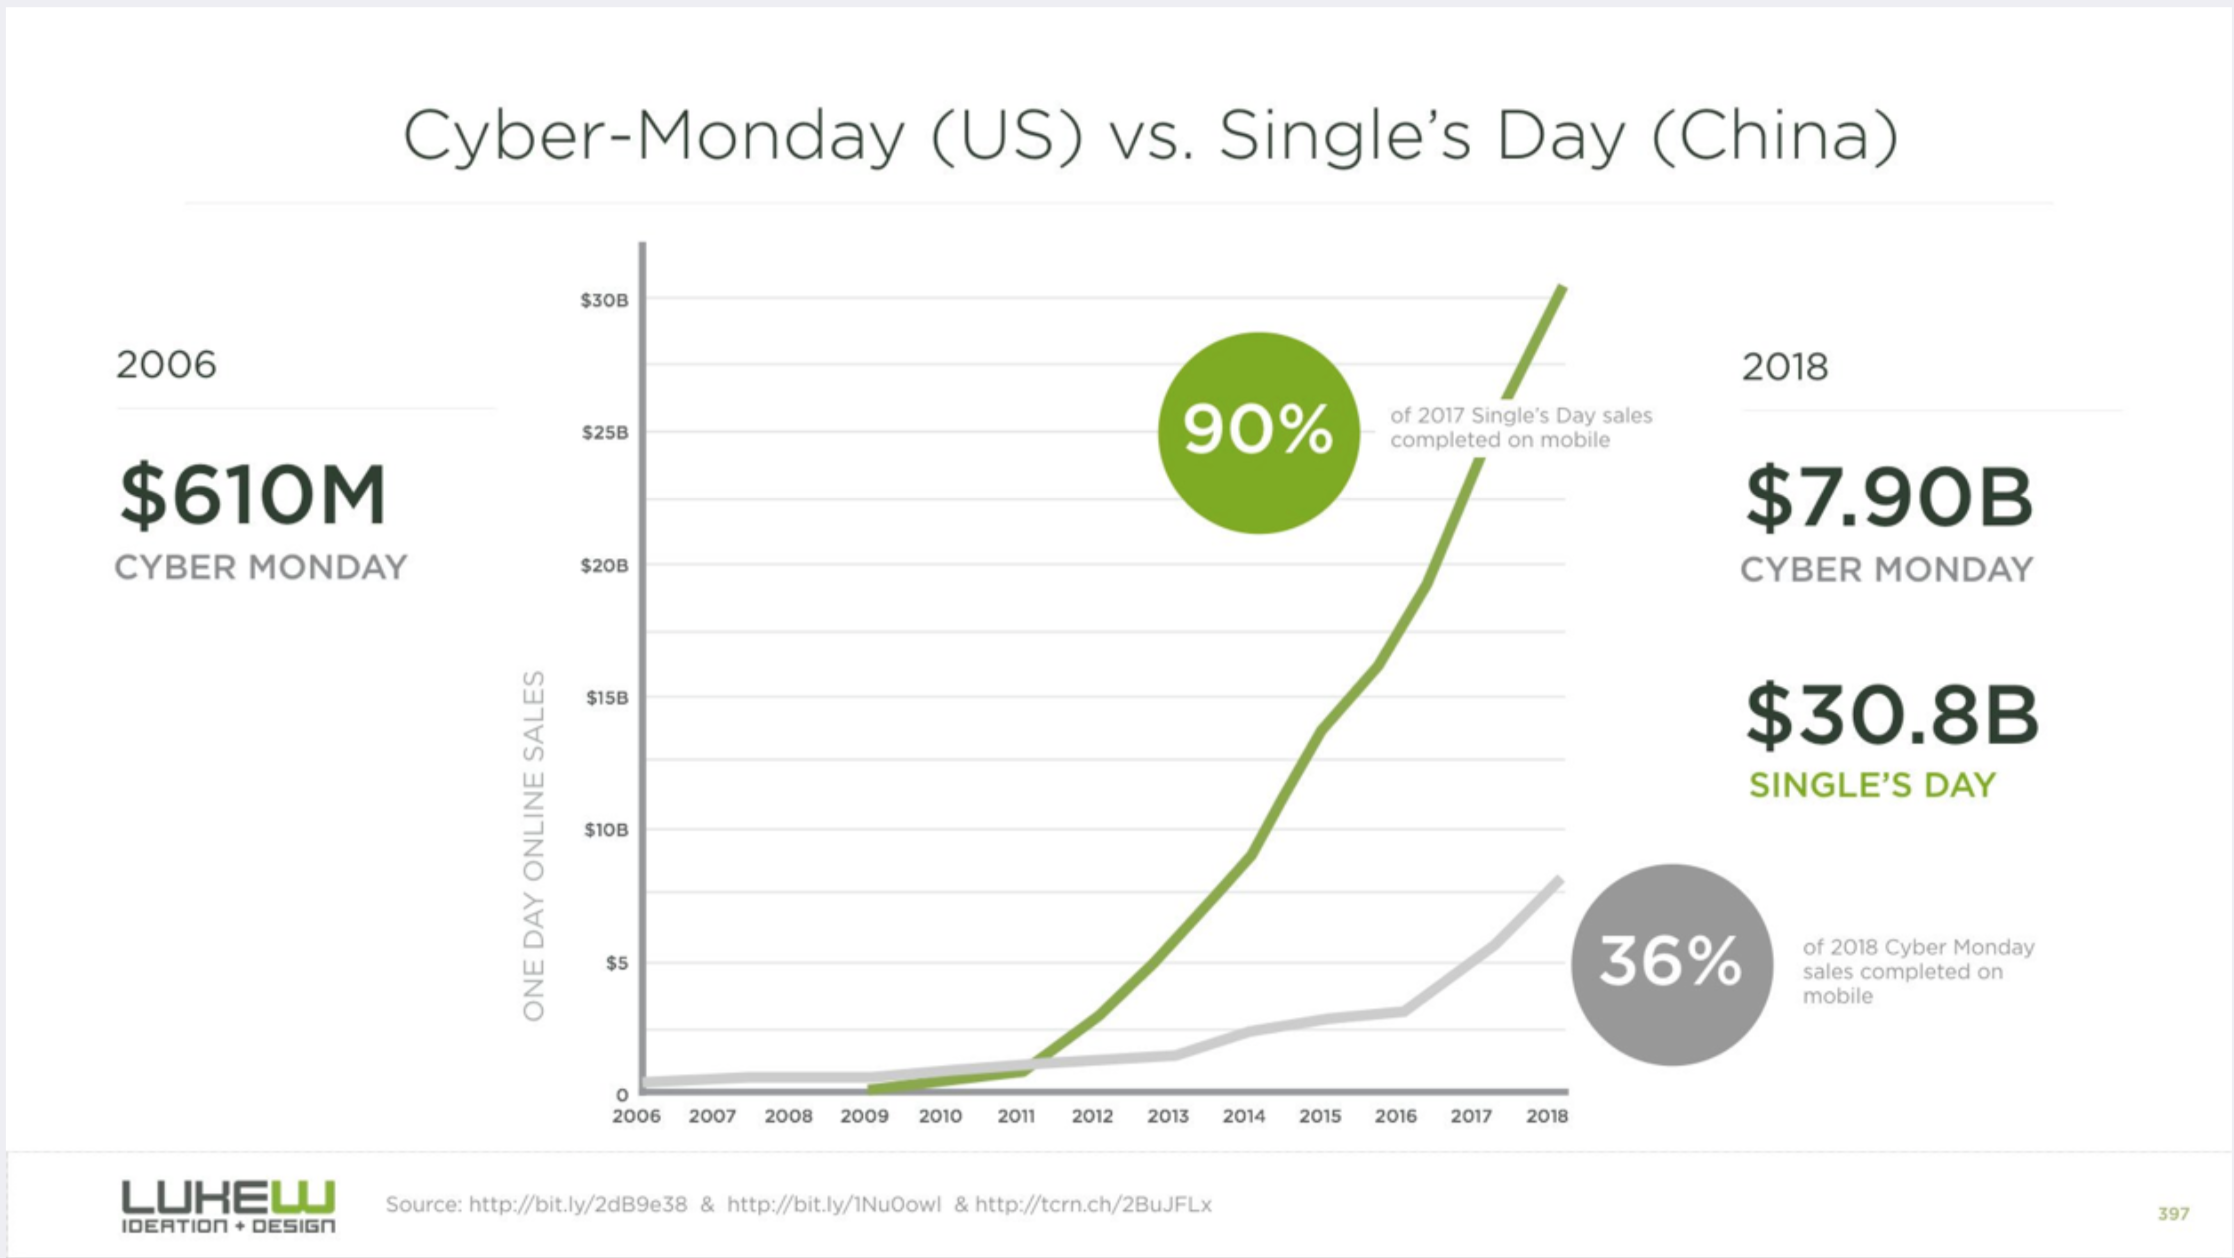 A chart from LukeW.com which shows the difference in sales between Cyber-Monday in the US and Single's Day in China.